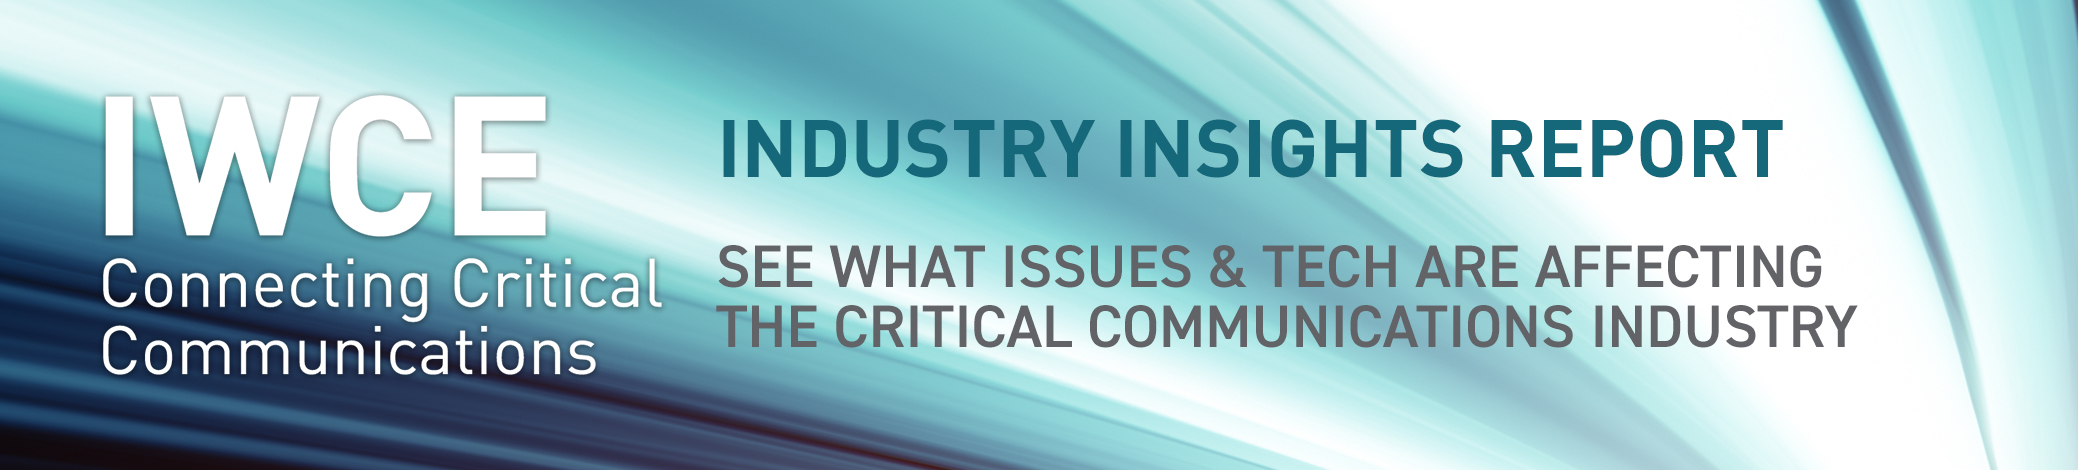 IWCE Industry Insights Report